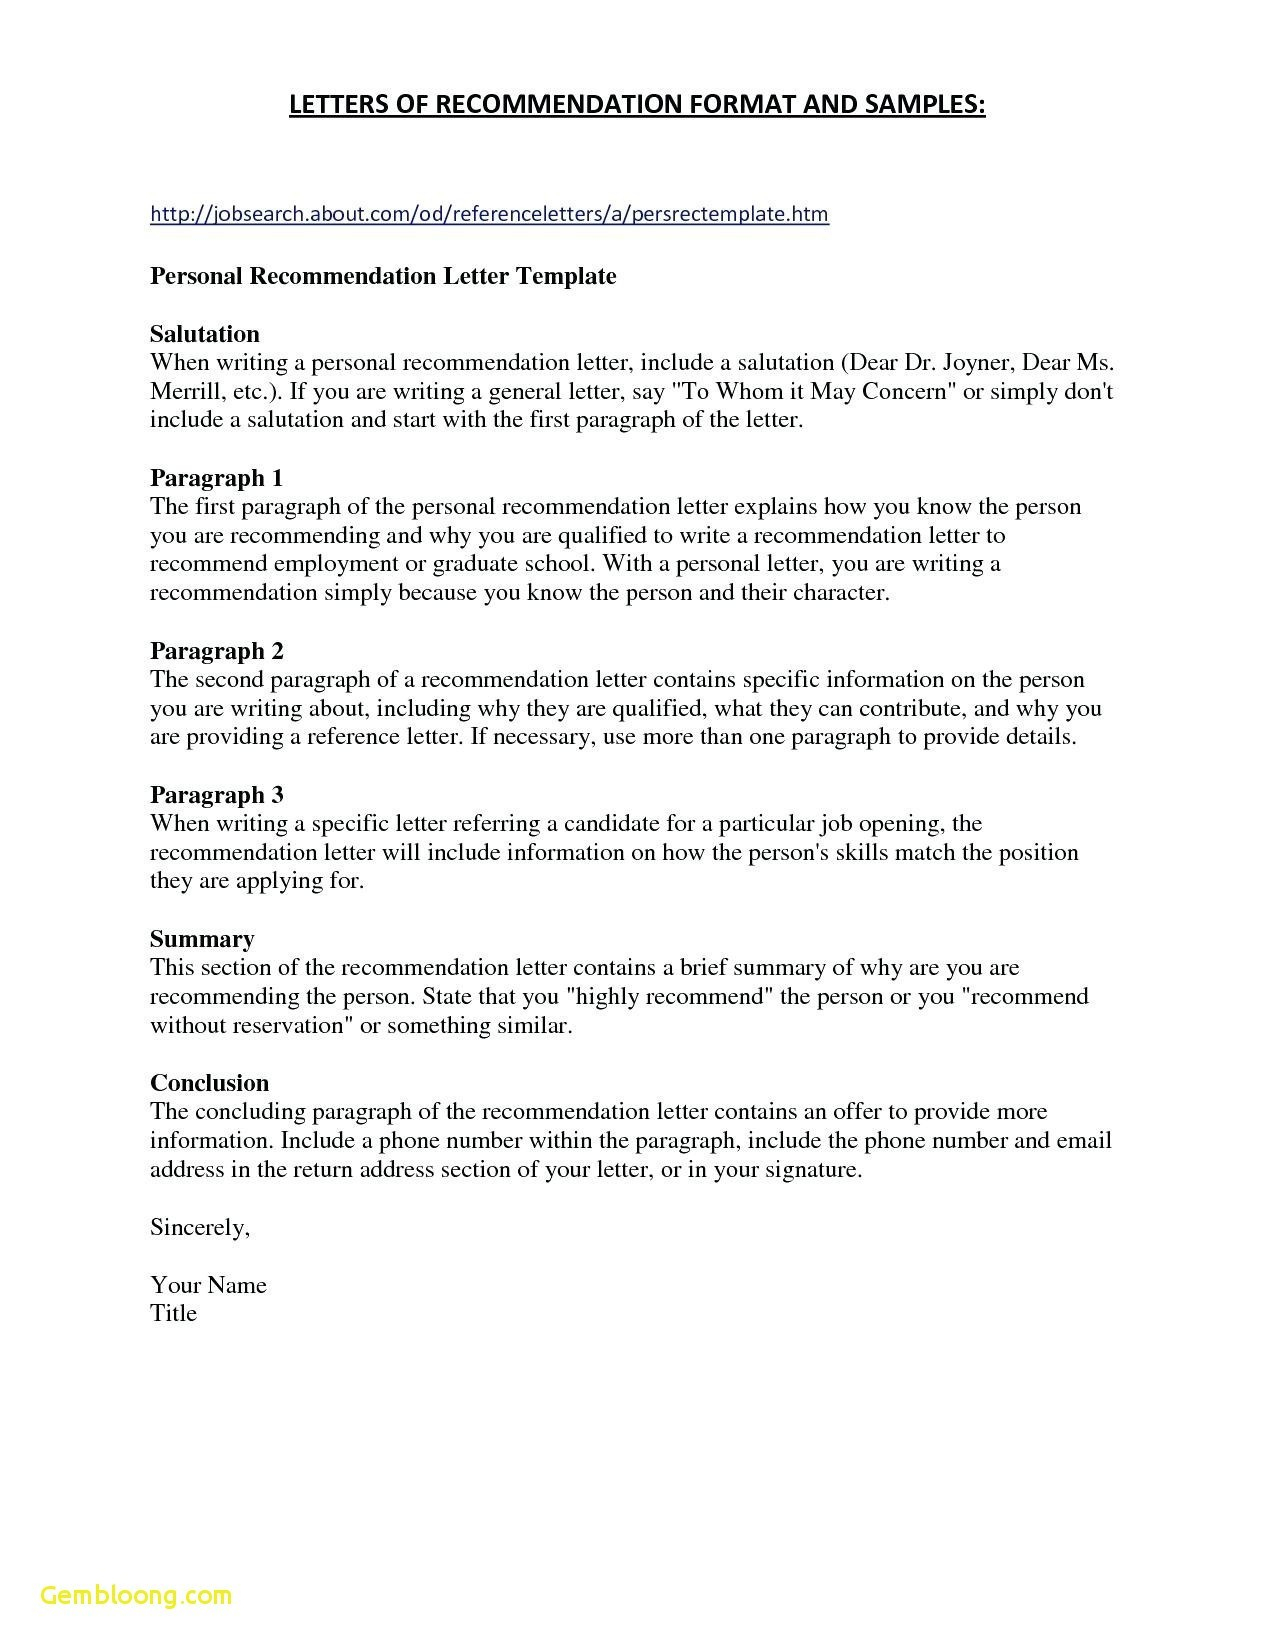 Job Reference Letter Template - Job Re Mendation Letter Template Best Refrence format Job